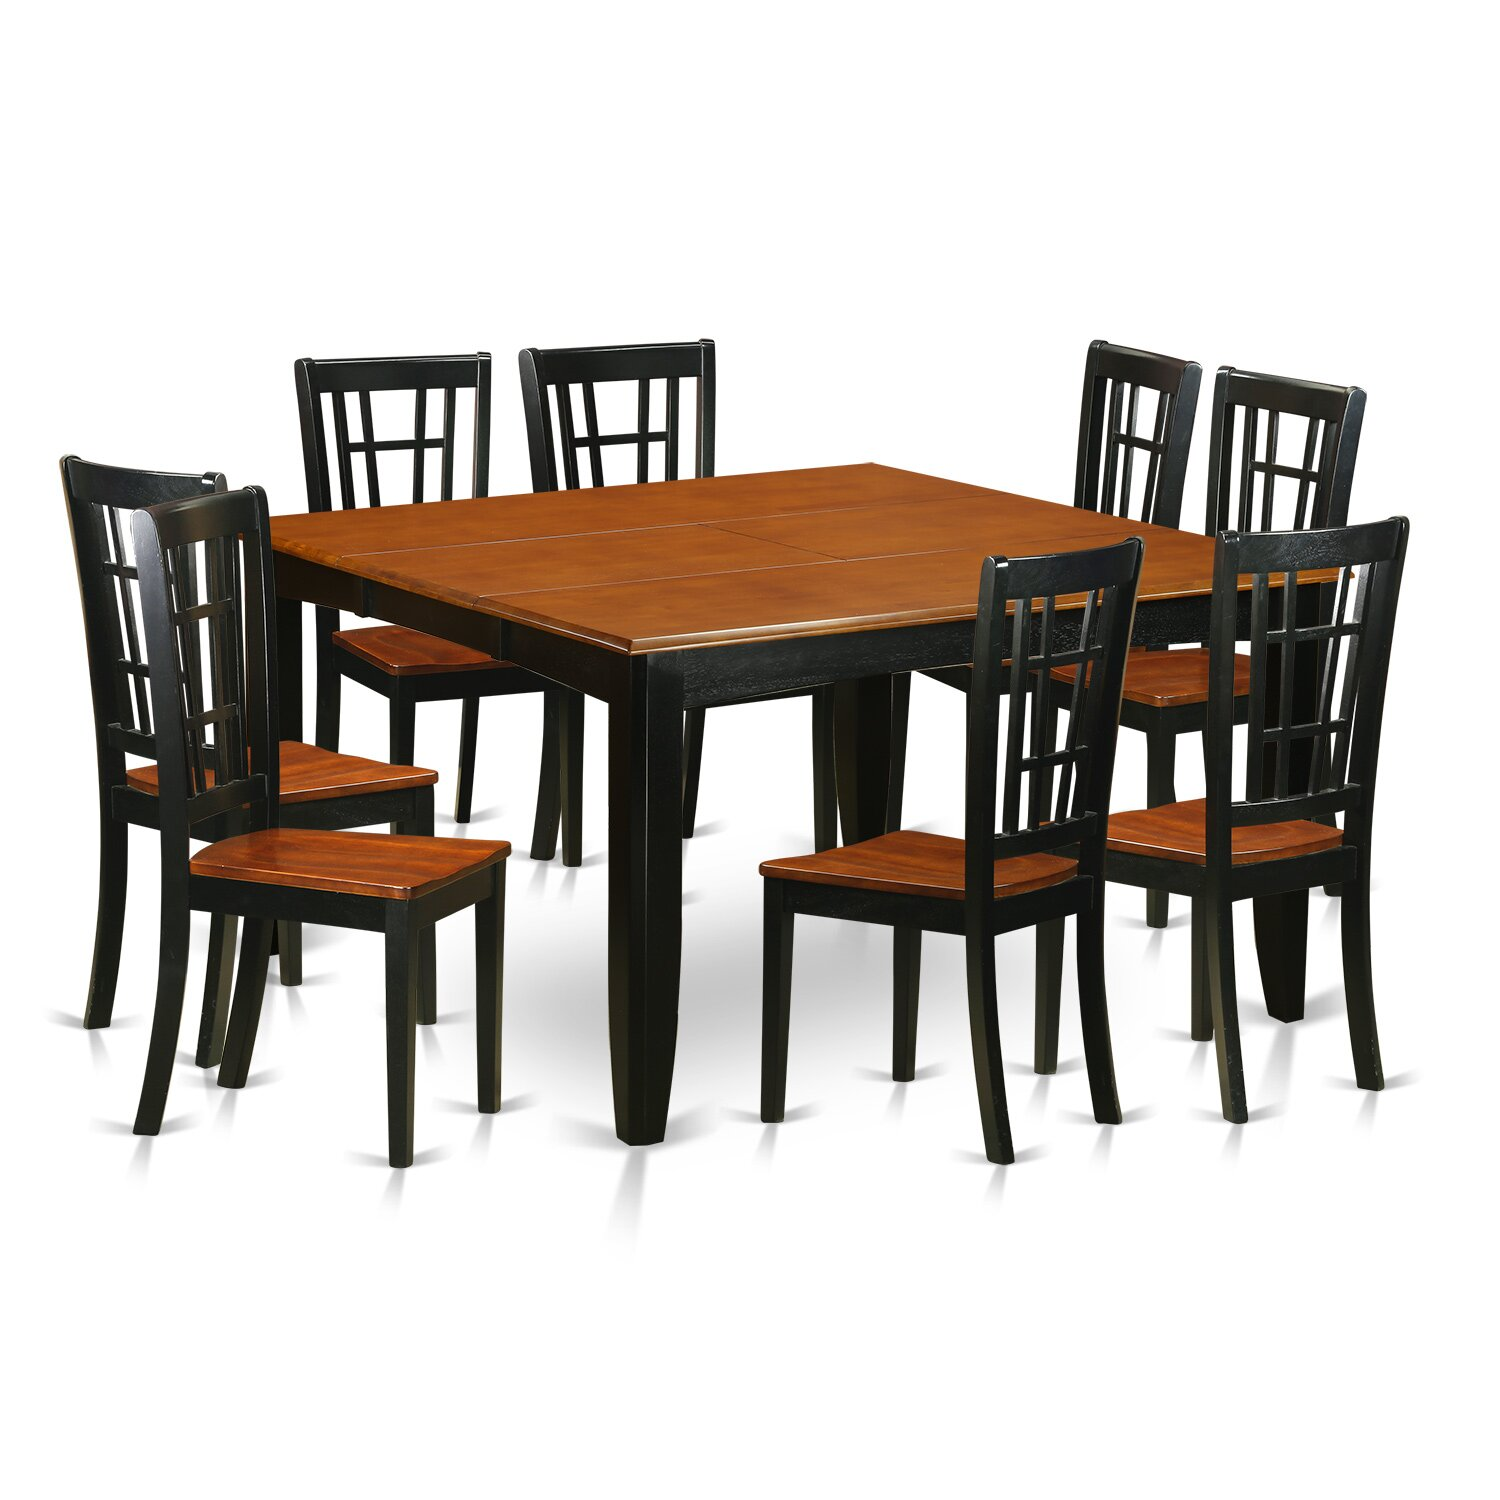 9 PC Dining Room Set Dining Table and 8 Solid Wood Dining Chairs PFNI9 BCH EWFR